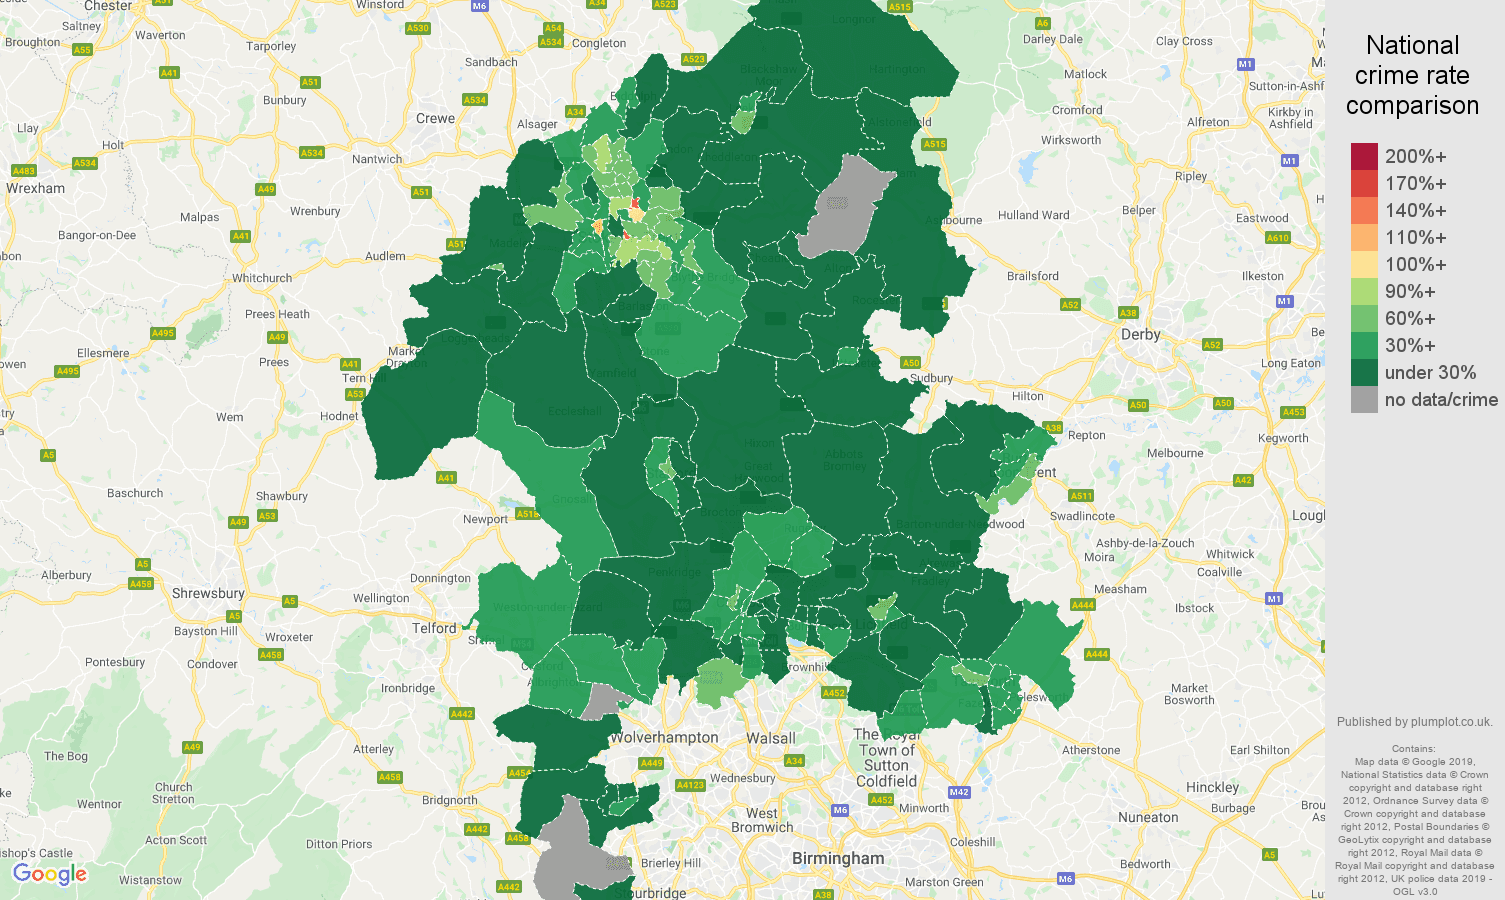 Staffordshire public order crime rate comparison map